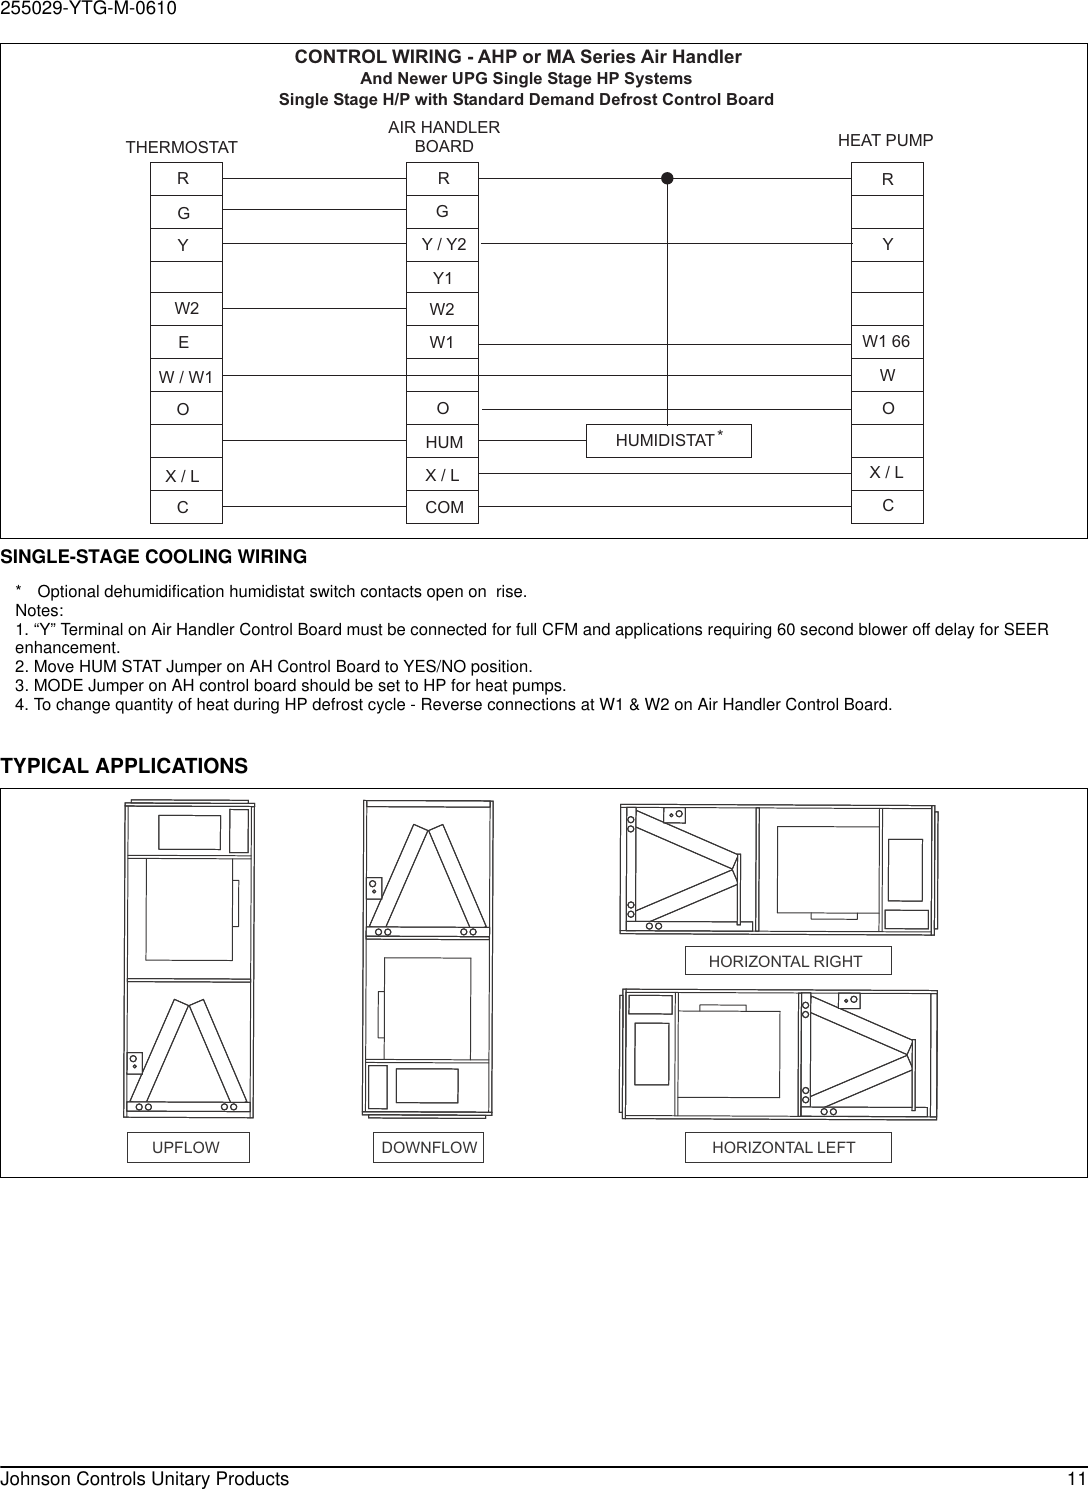 York Ahp18 Users Manual 255029 Ytg M 0610 Control Board Wiring Diagram Page 11 Of 12